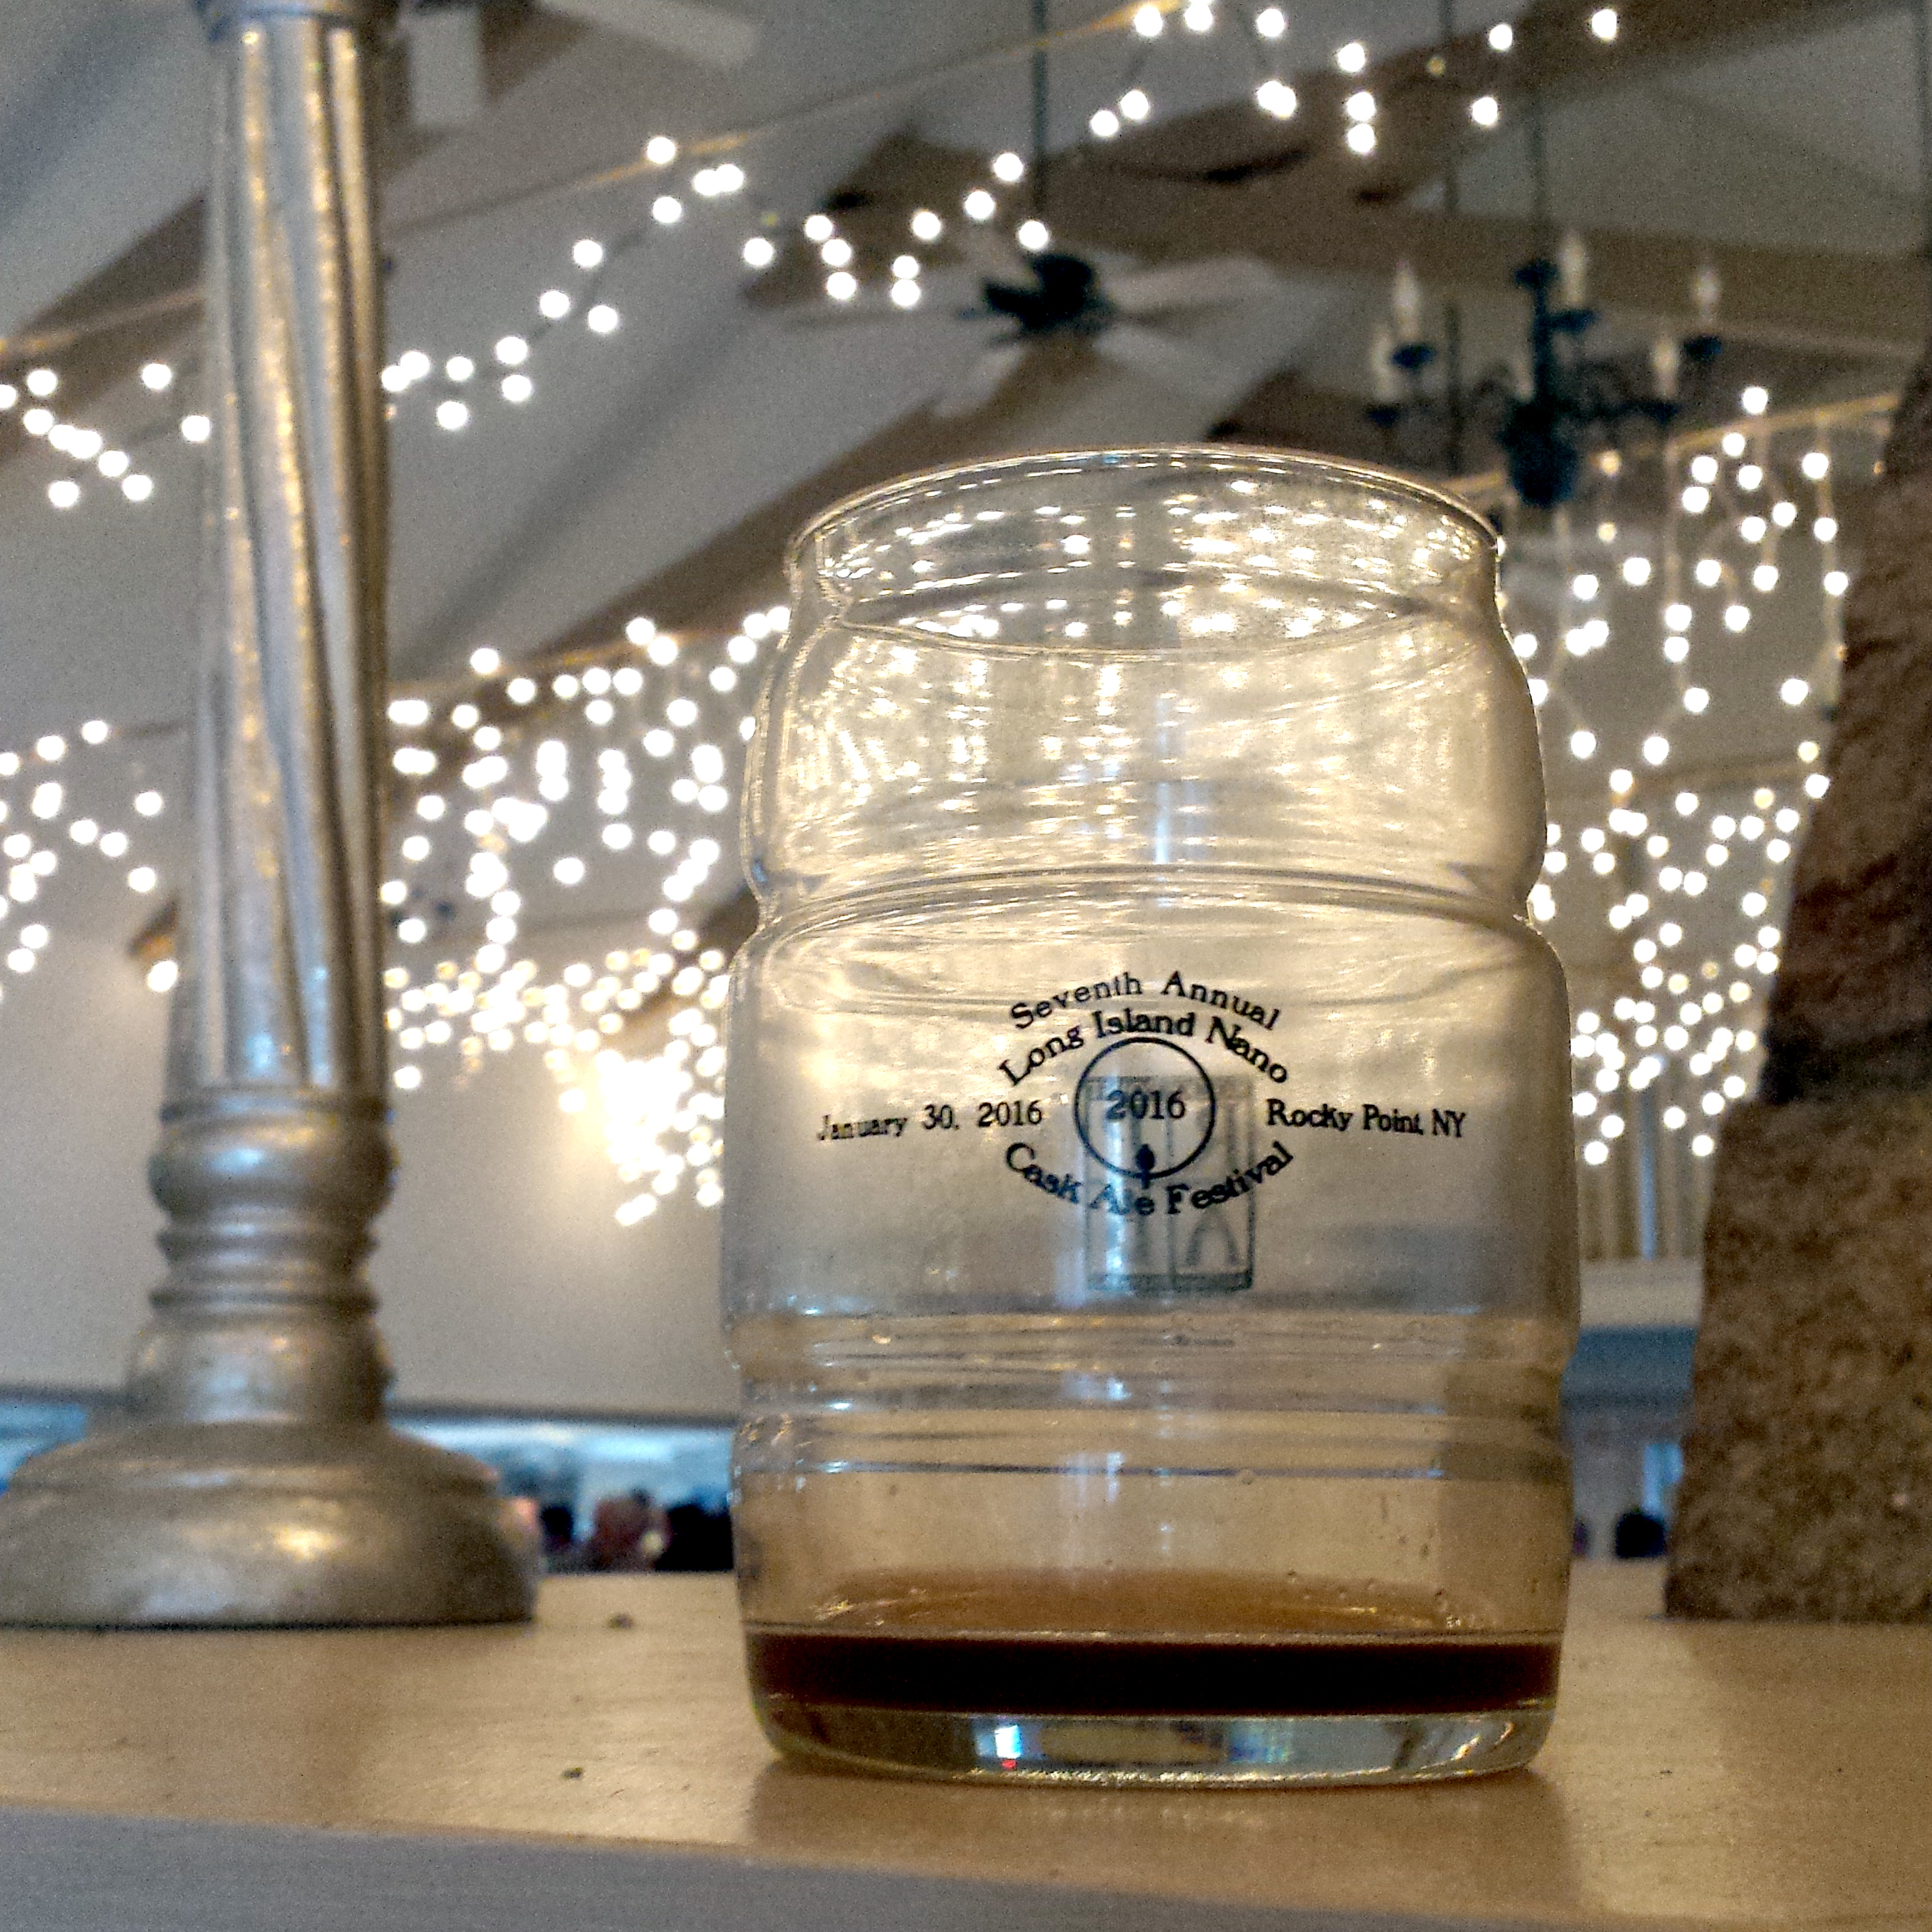 A cask shaped glass from the 2016 Long Island Nano Cask Ale Festival with a small amount of dark beer lingering in the glass